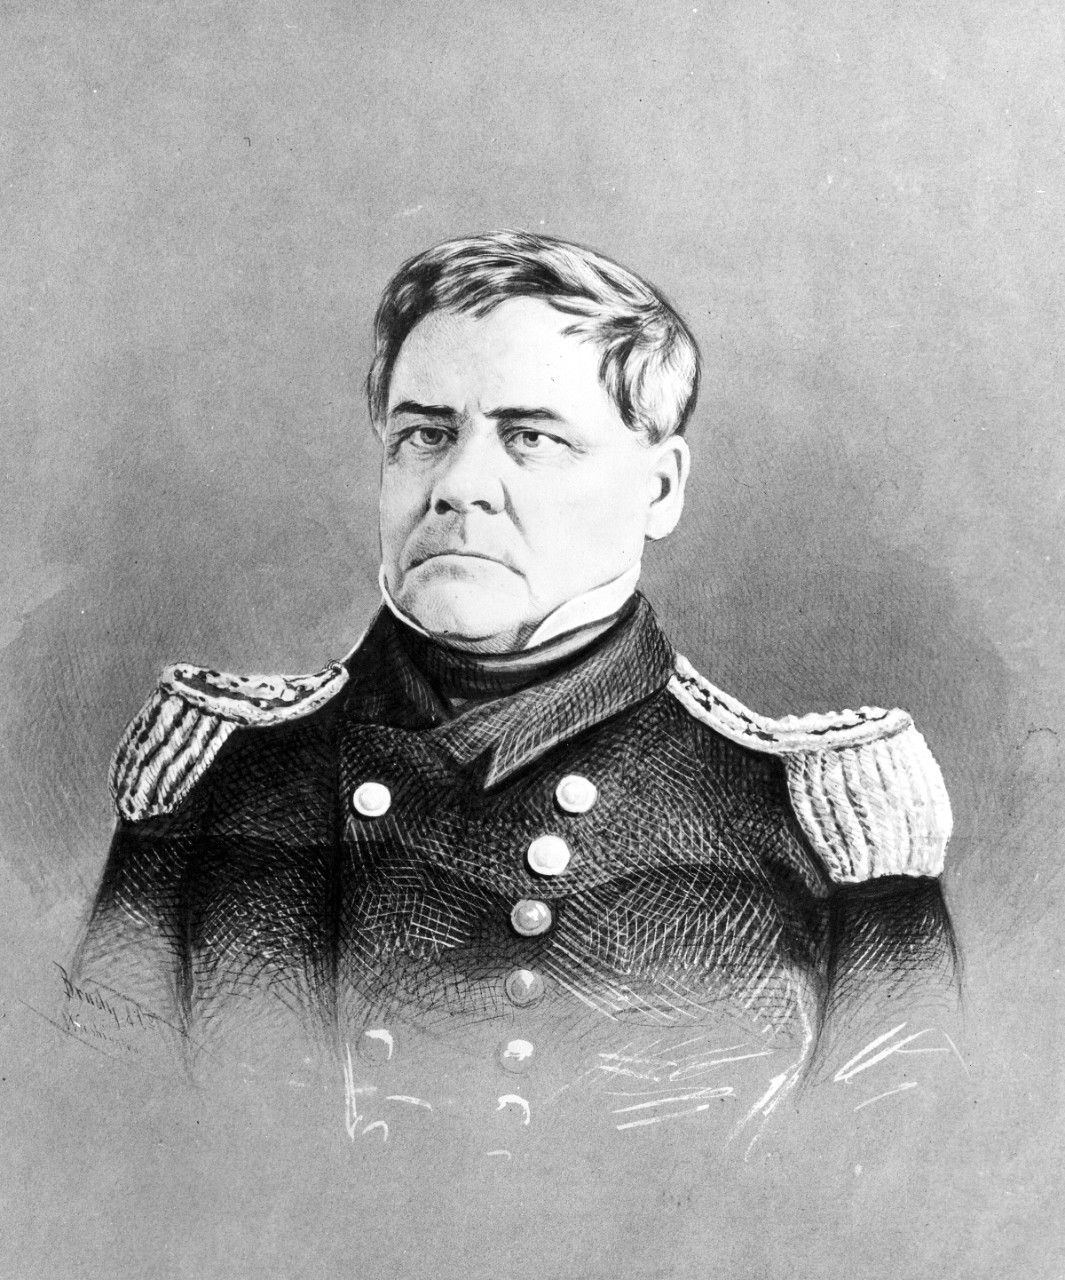 Commodore Lewis Warrington, the first Chief of the Bureau of Navy Yards and Docks. From 1826 to 1830, Commodore Warrington served as one of the three Navy Board commissioners, a body charged with the administration of naval affairs. Afterwards, Warrington returned to the Norfolk Navy Yard to serve as commandant. In 1840, the Navy reassigned to Washington to serve for another two years as commissioner on the Navy Board. After the Navy reorganized the department in 1842, Warrington became first Chief of the Bureau of Navy Yards and Docks.